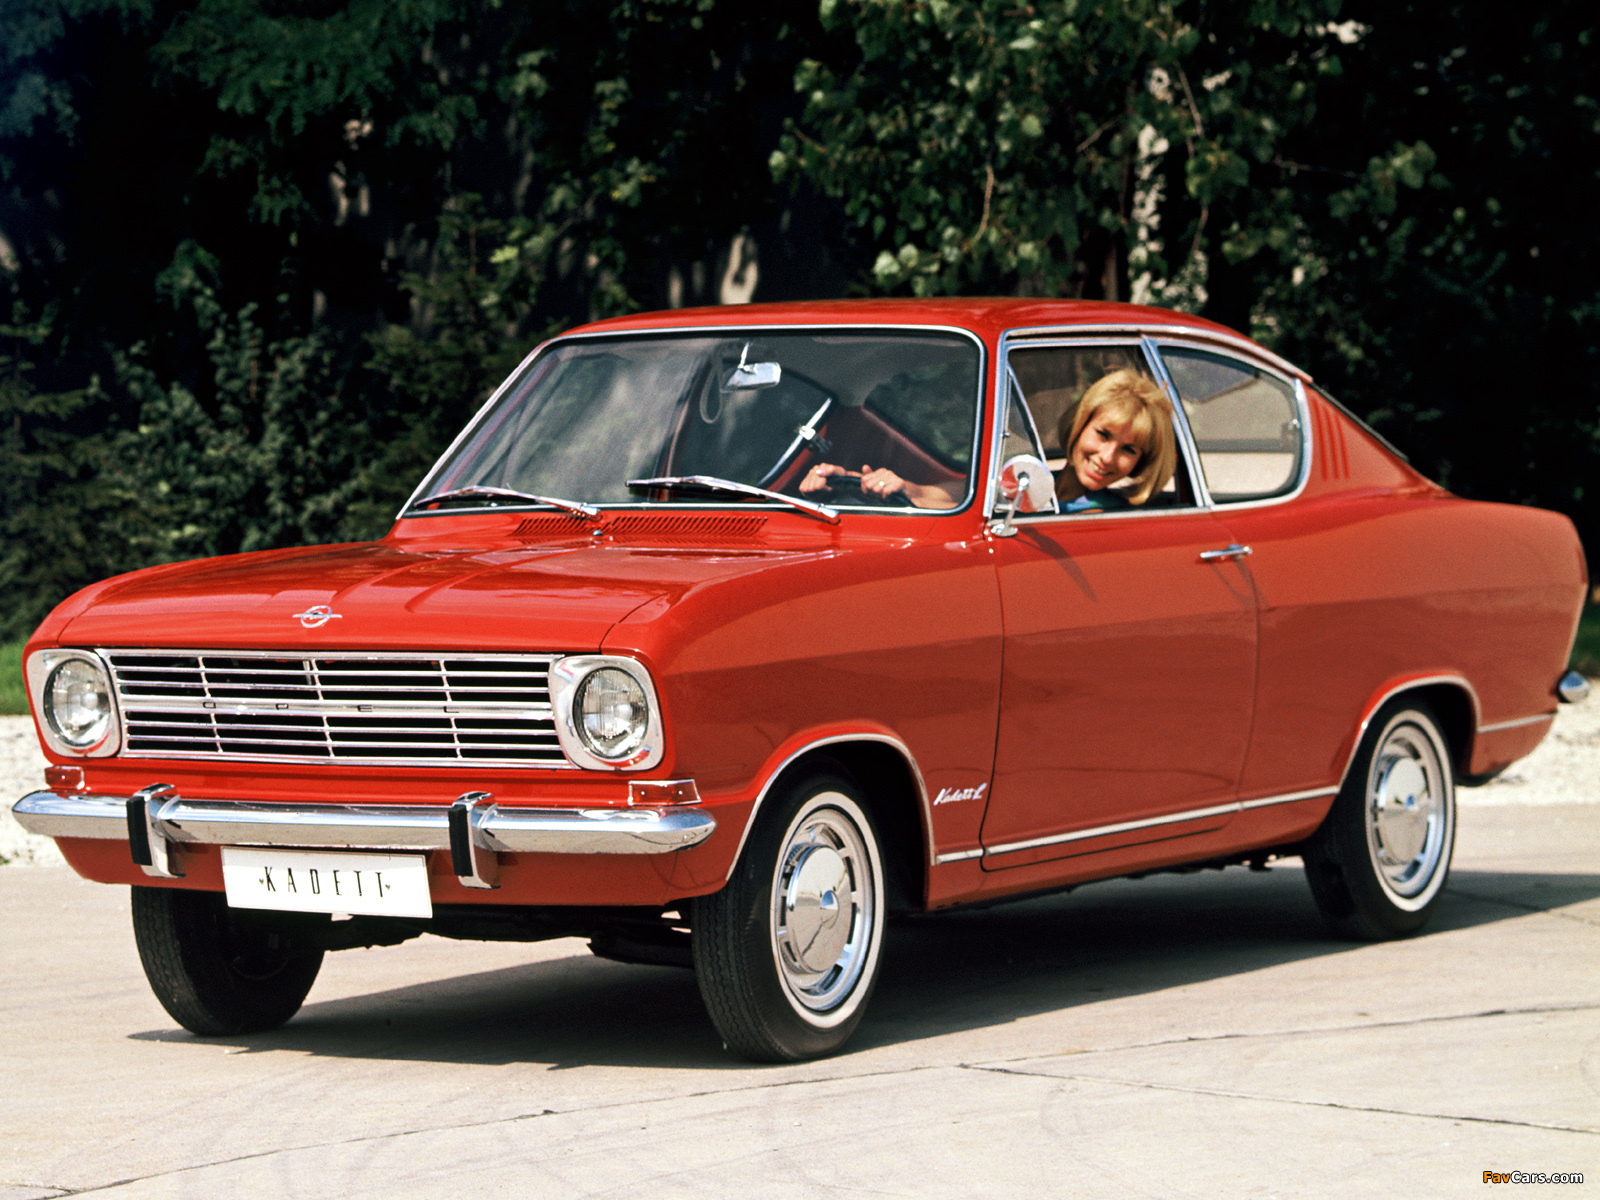 opel kadett coupe b 1965 70 photos 1600x1200. Black Bedroom Furniture Sets. Home Design Ideas